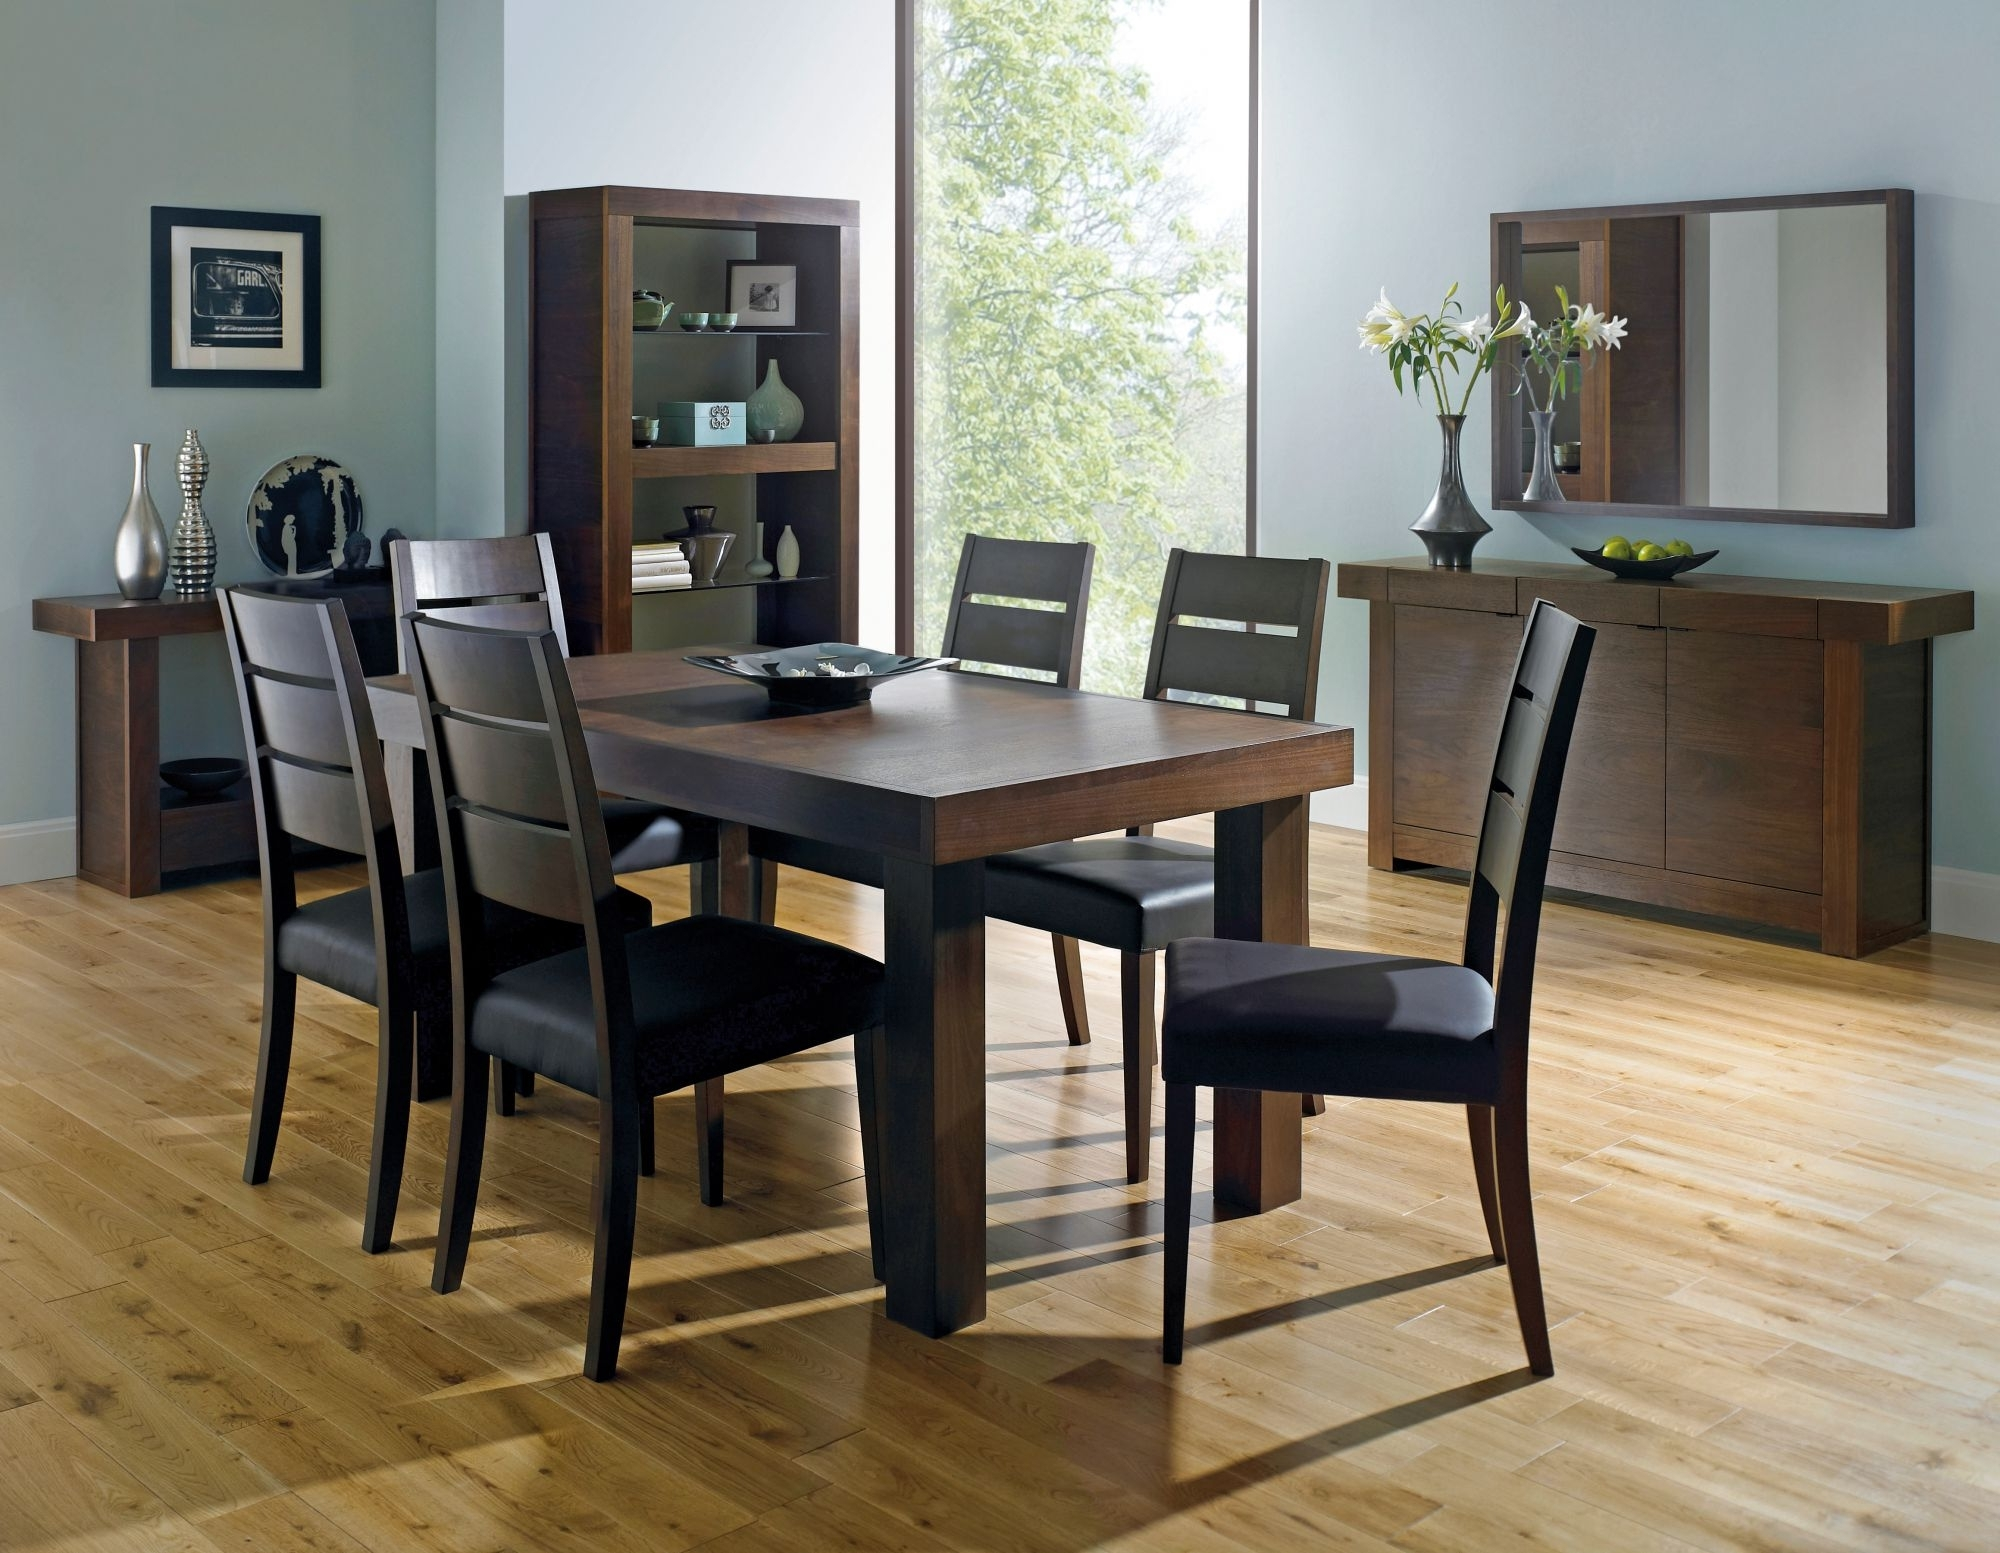 Bentley Designs Akita Walnut 4 6 End Extending Dining Table + 4 With Regard To Current Walnut Dining Table And 6 Chairs (View 4 of 25)